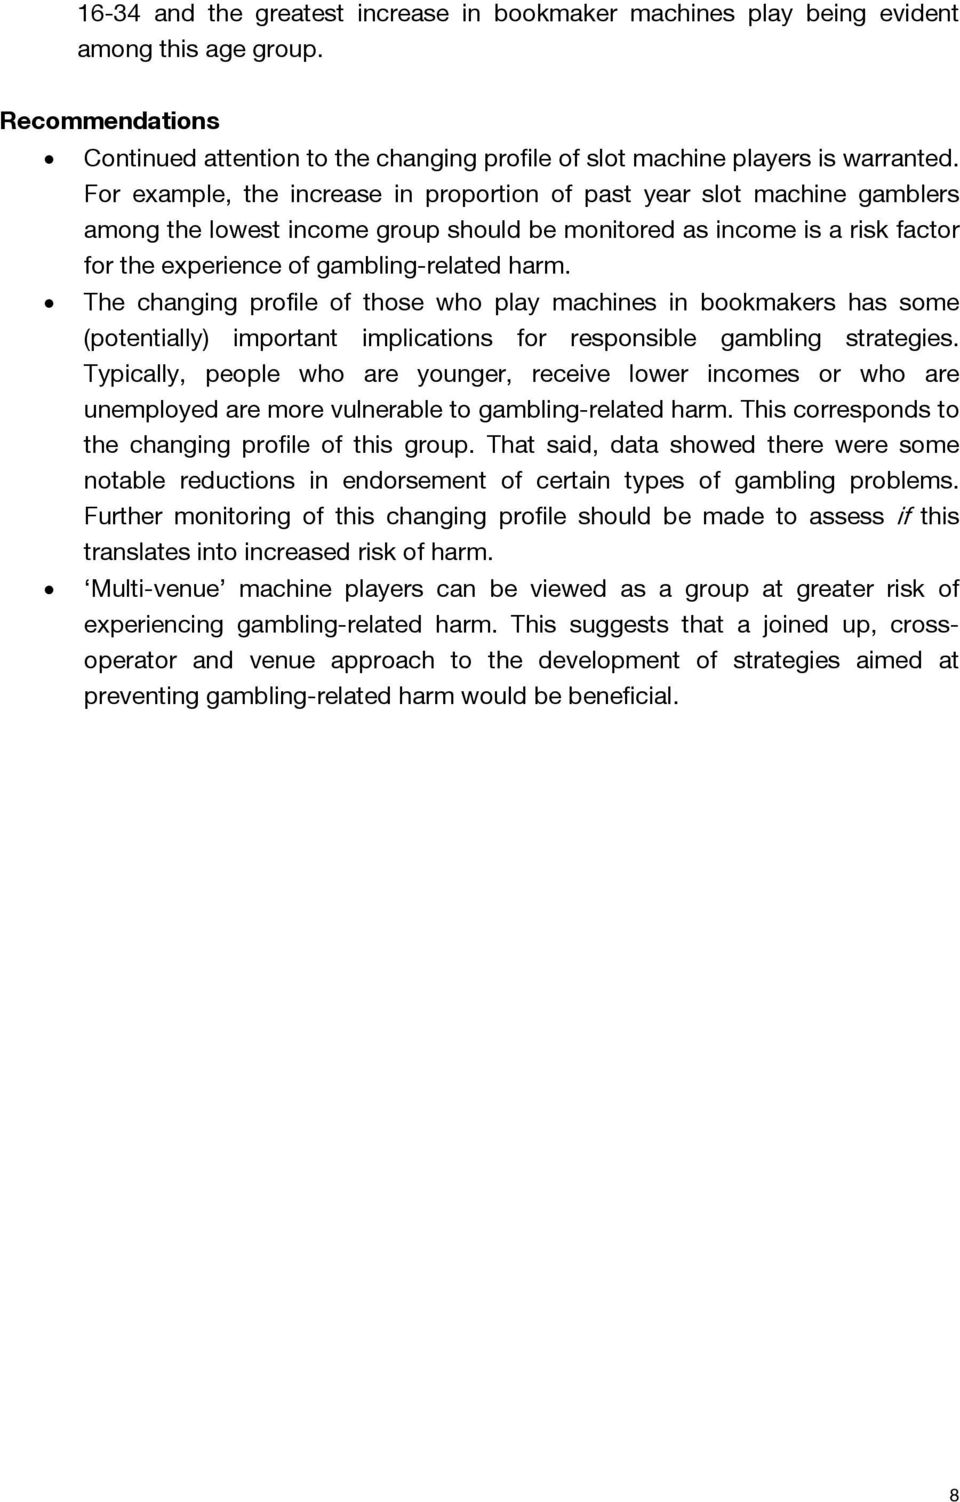 The changing profile of those who play machines in bookmakers has some (potentially) important implications for responsible gambling strategies.